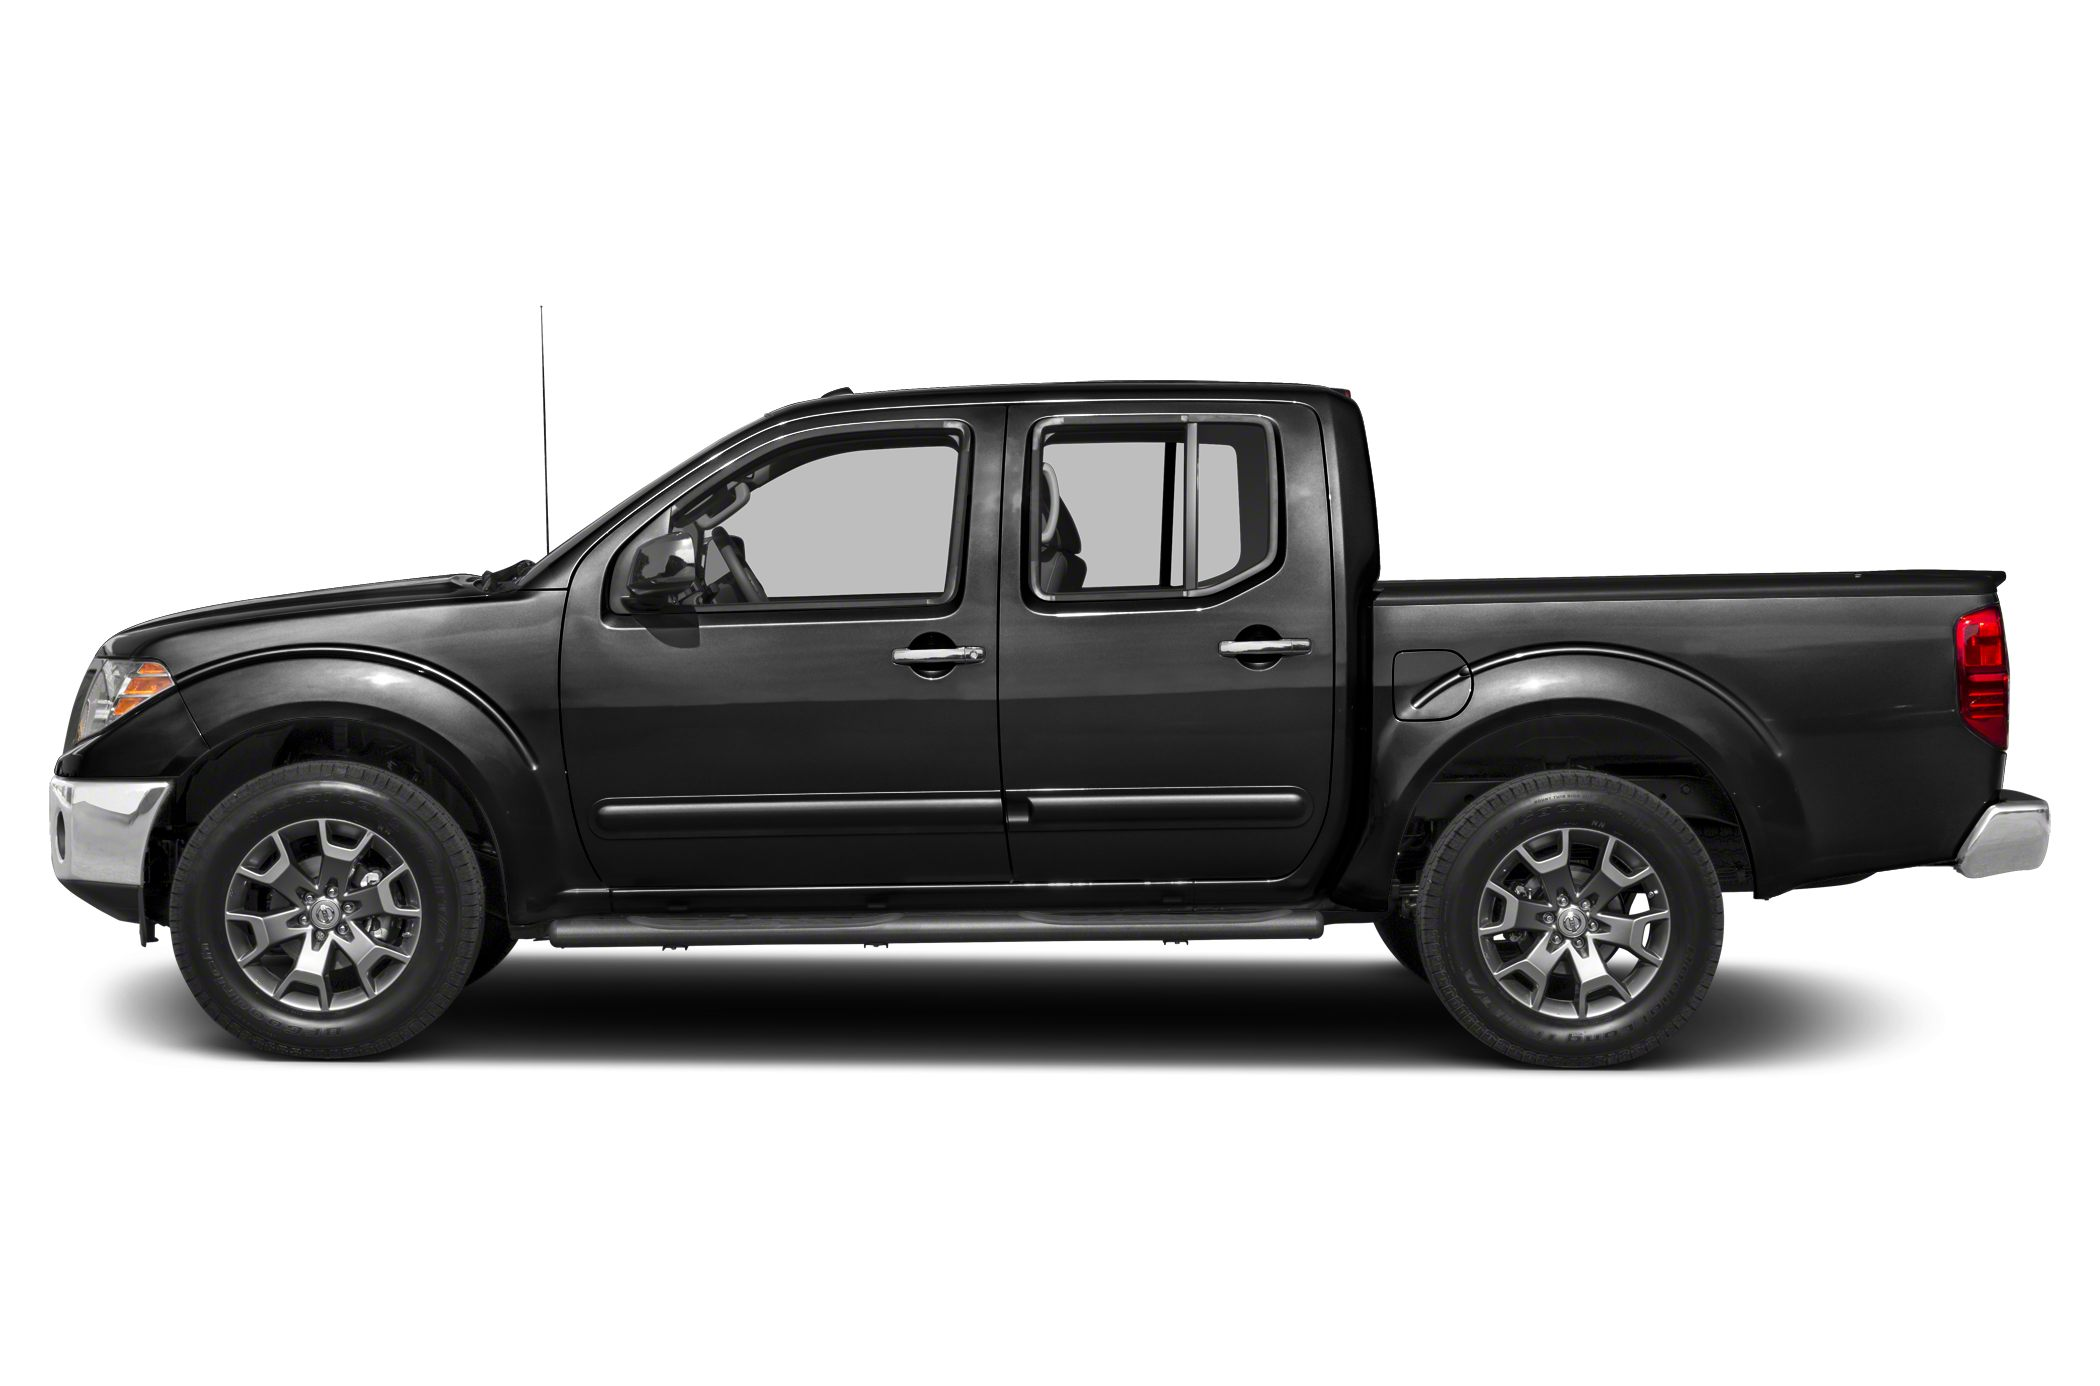 2018 Nissan Frontier Pictures & Photos - CarsDirect